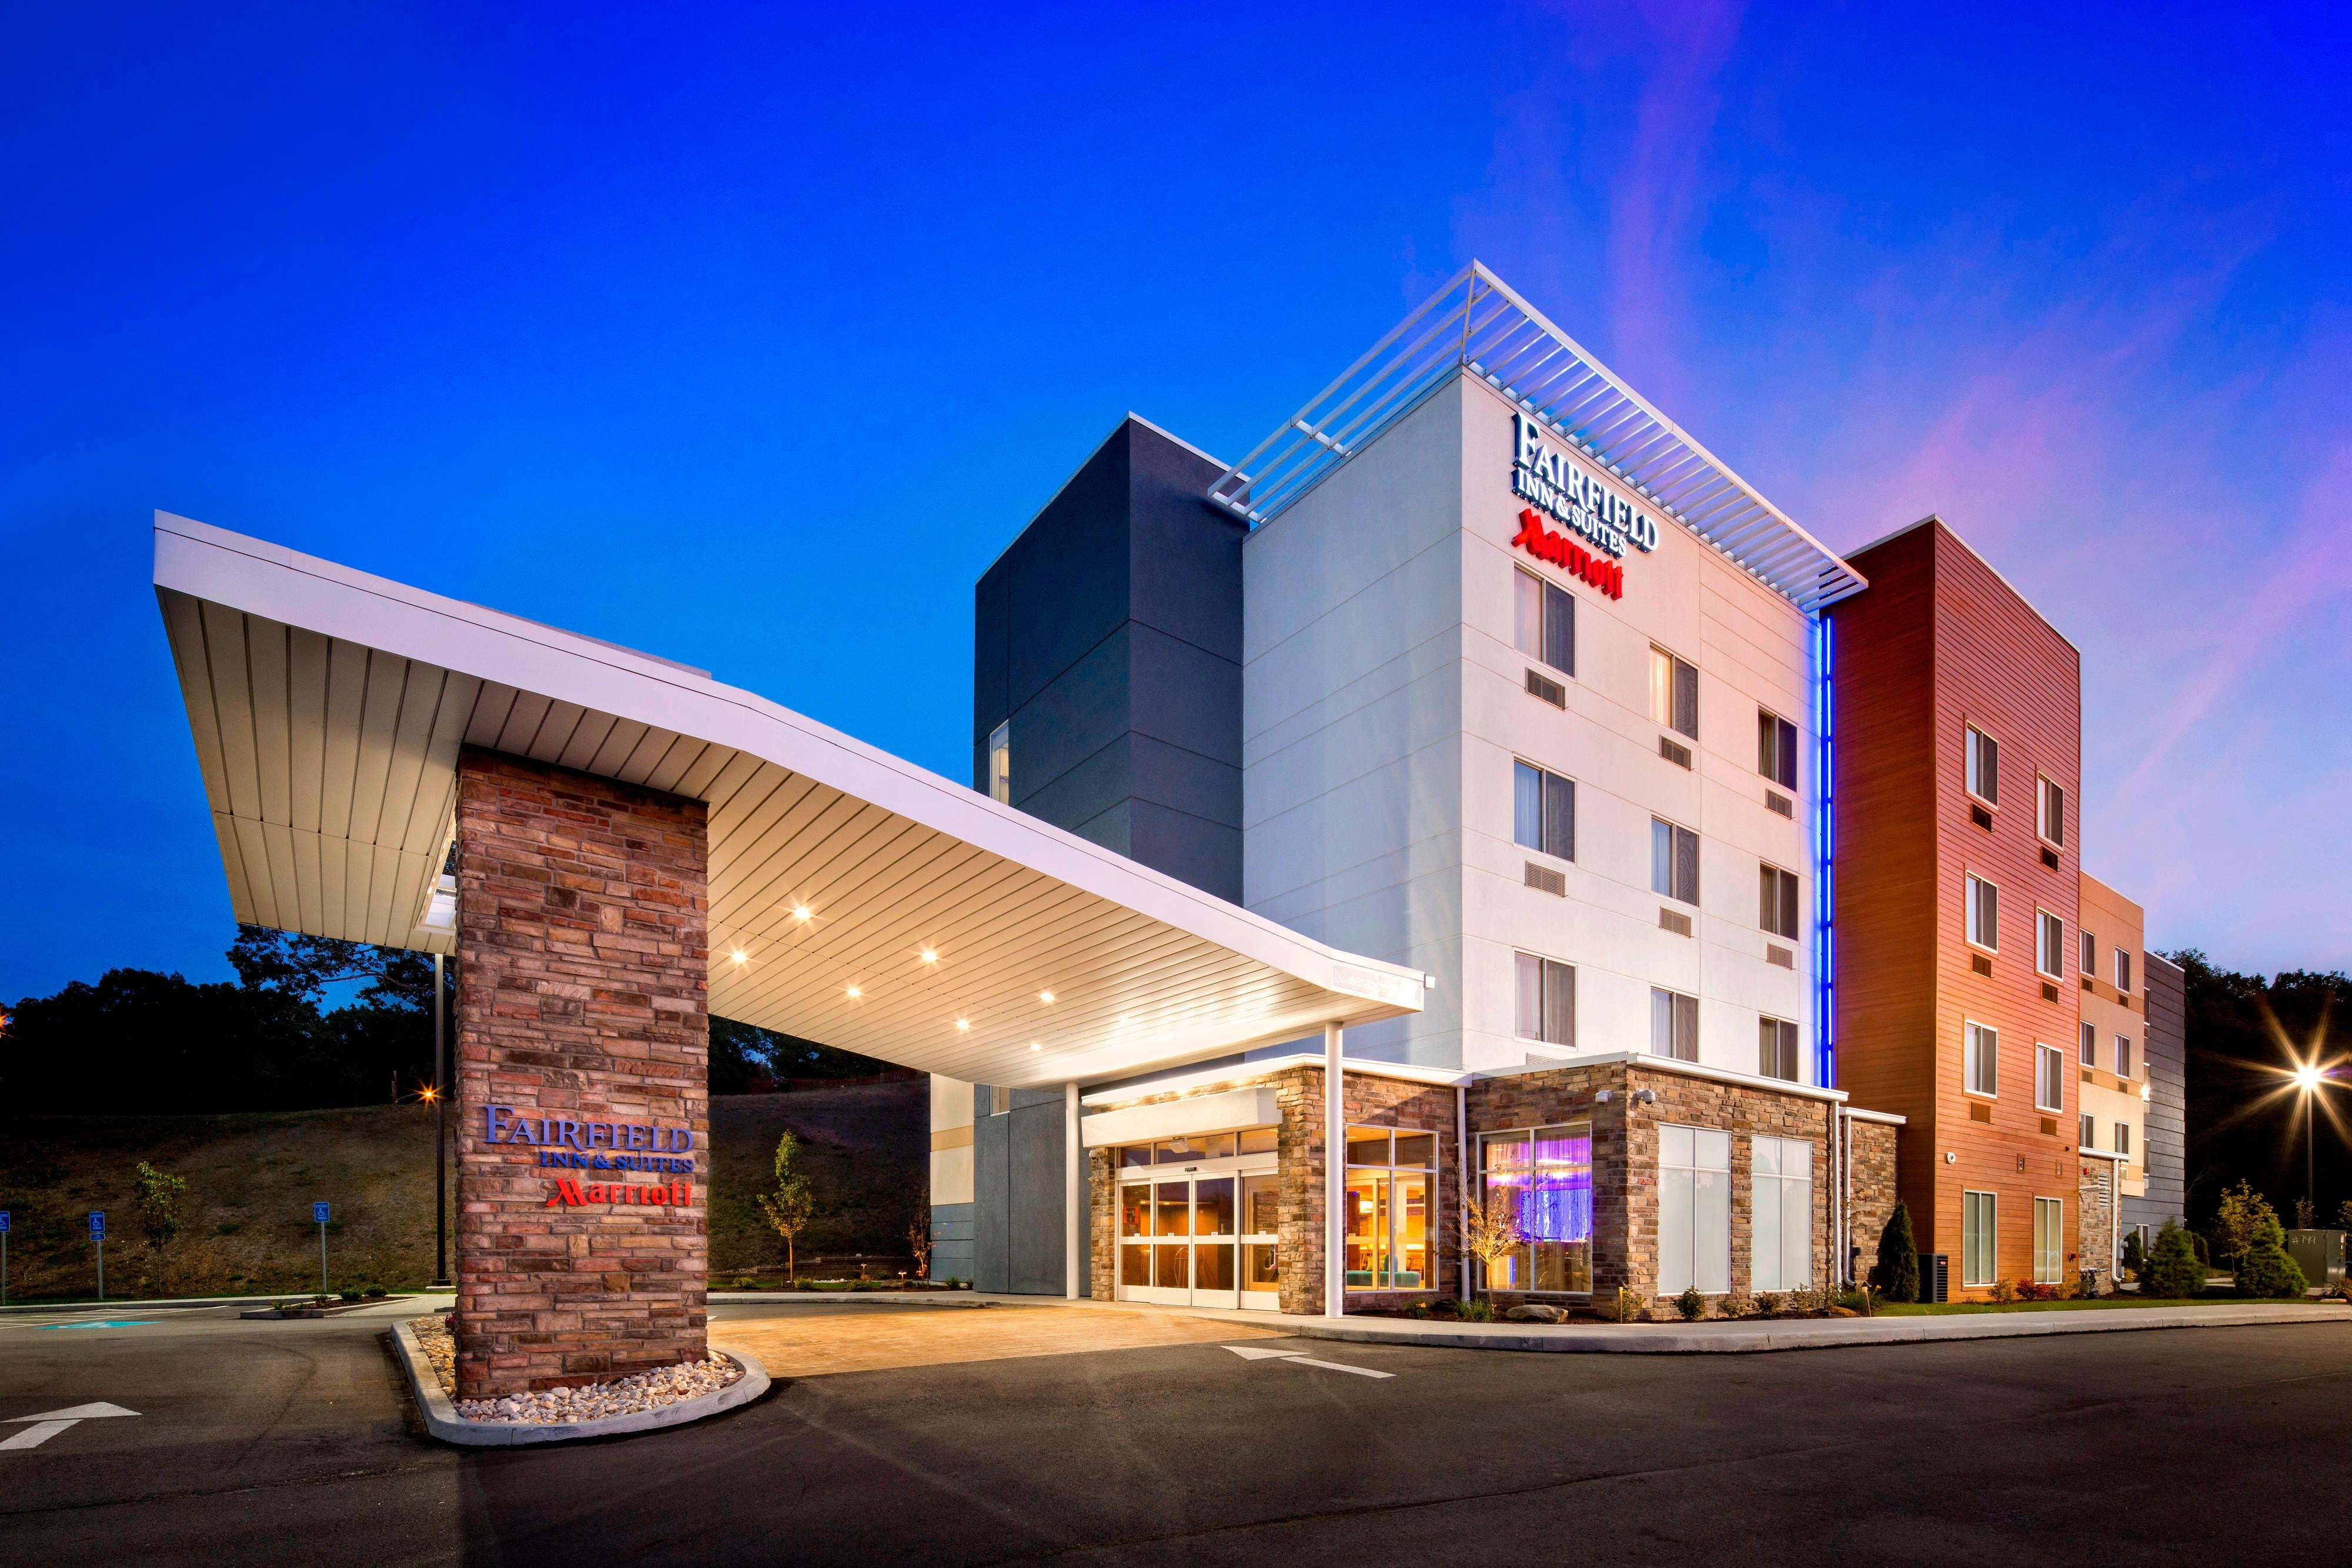 Fairfield Inn & Suites Monaca Exterior